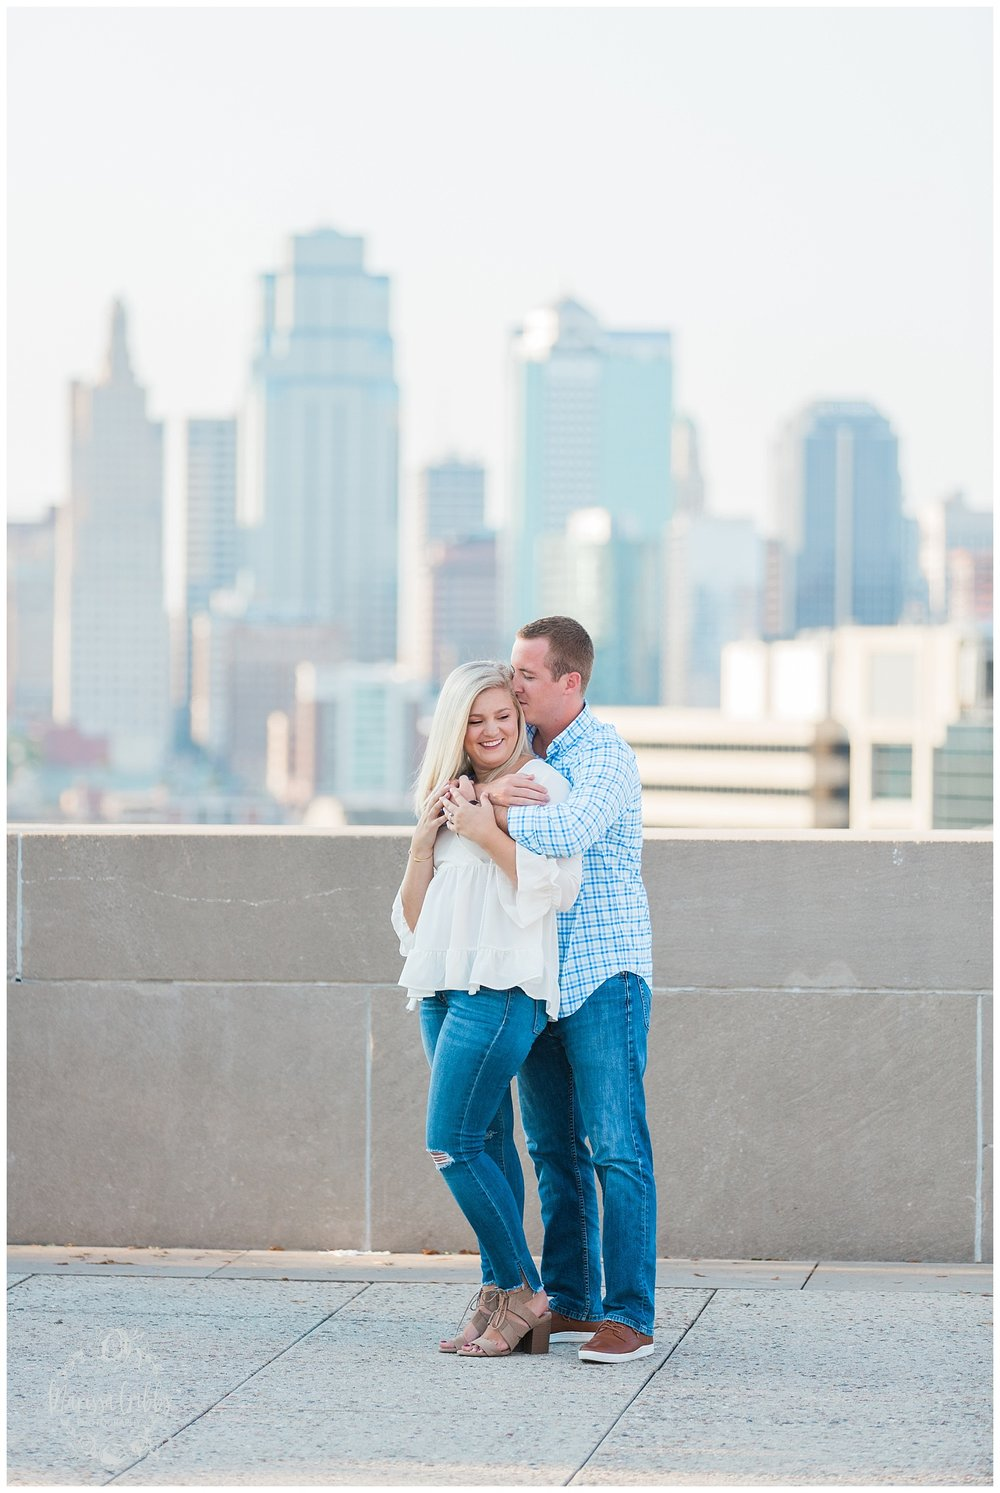 MADISON & ZACH ENGAGEMENT | LOOSE PARK ENGAGEMENT PHOTOGRAPHY | UNION STATION PHOTOGRAPHY | LIBERTY MEMORIAL PHOTOGRAPHY | MARISSA CRIBBS PHOTOGRAPHY_2305.jpg